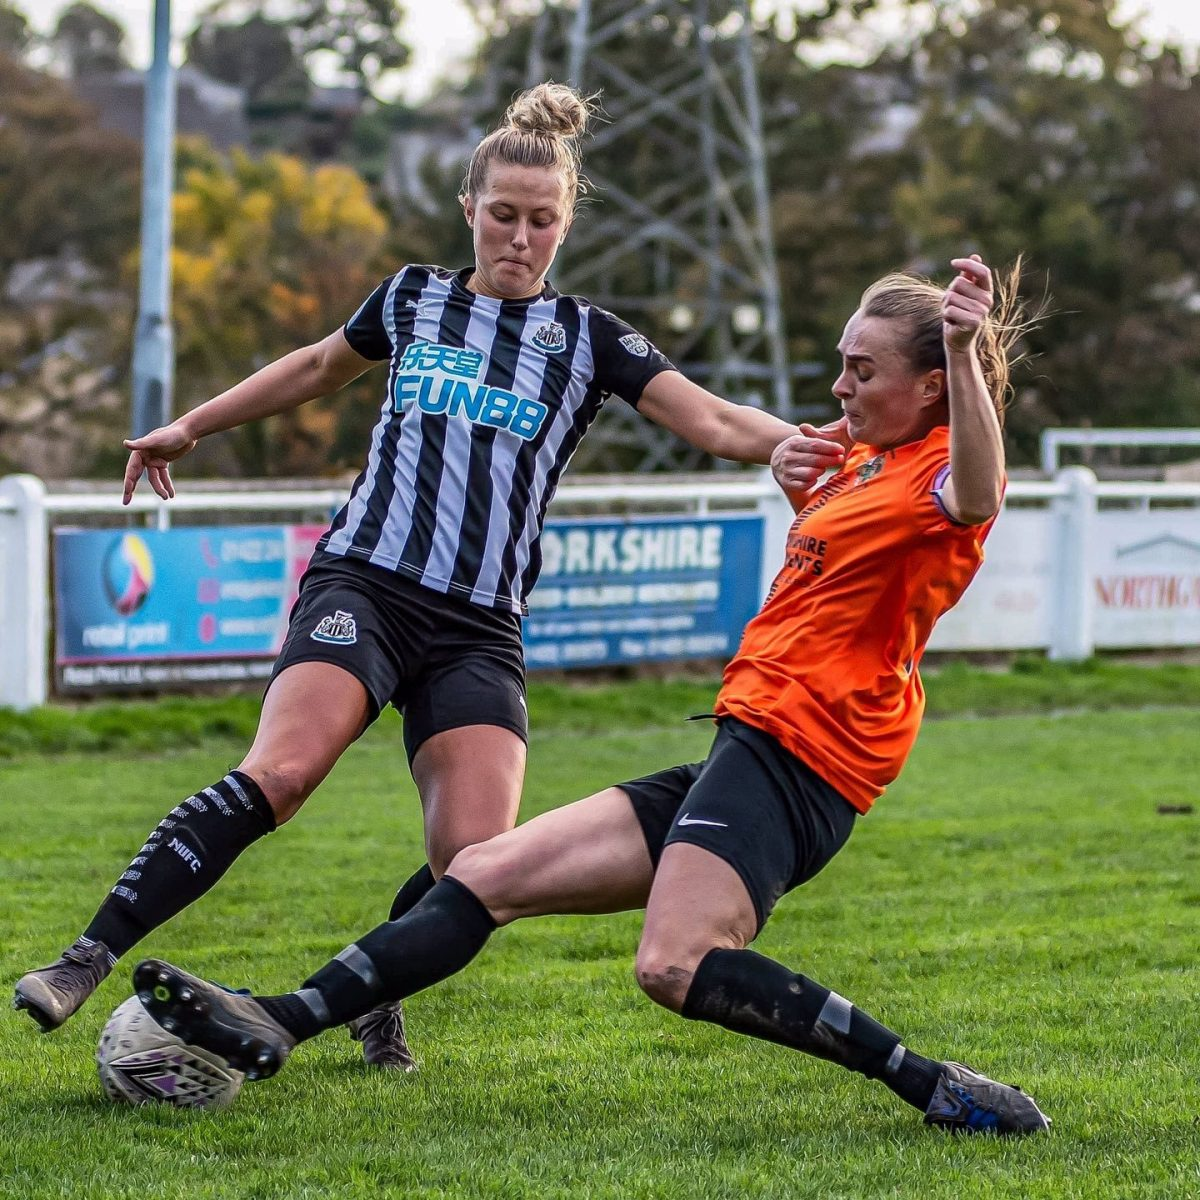 Brighouse's captain, Annabelle Cass, in action against Newcastle.